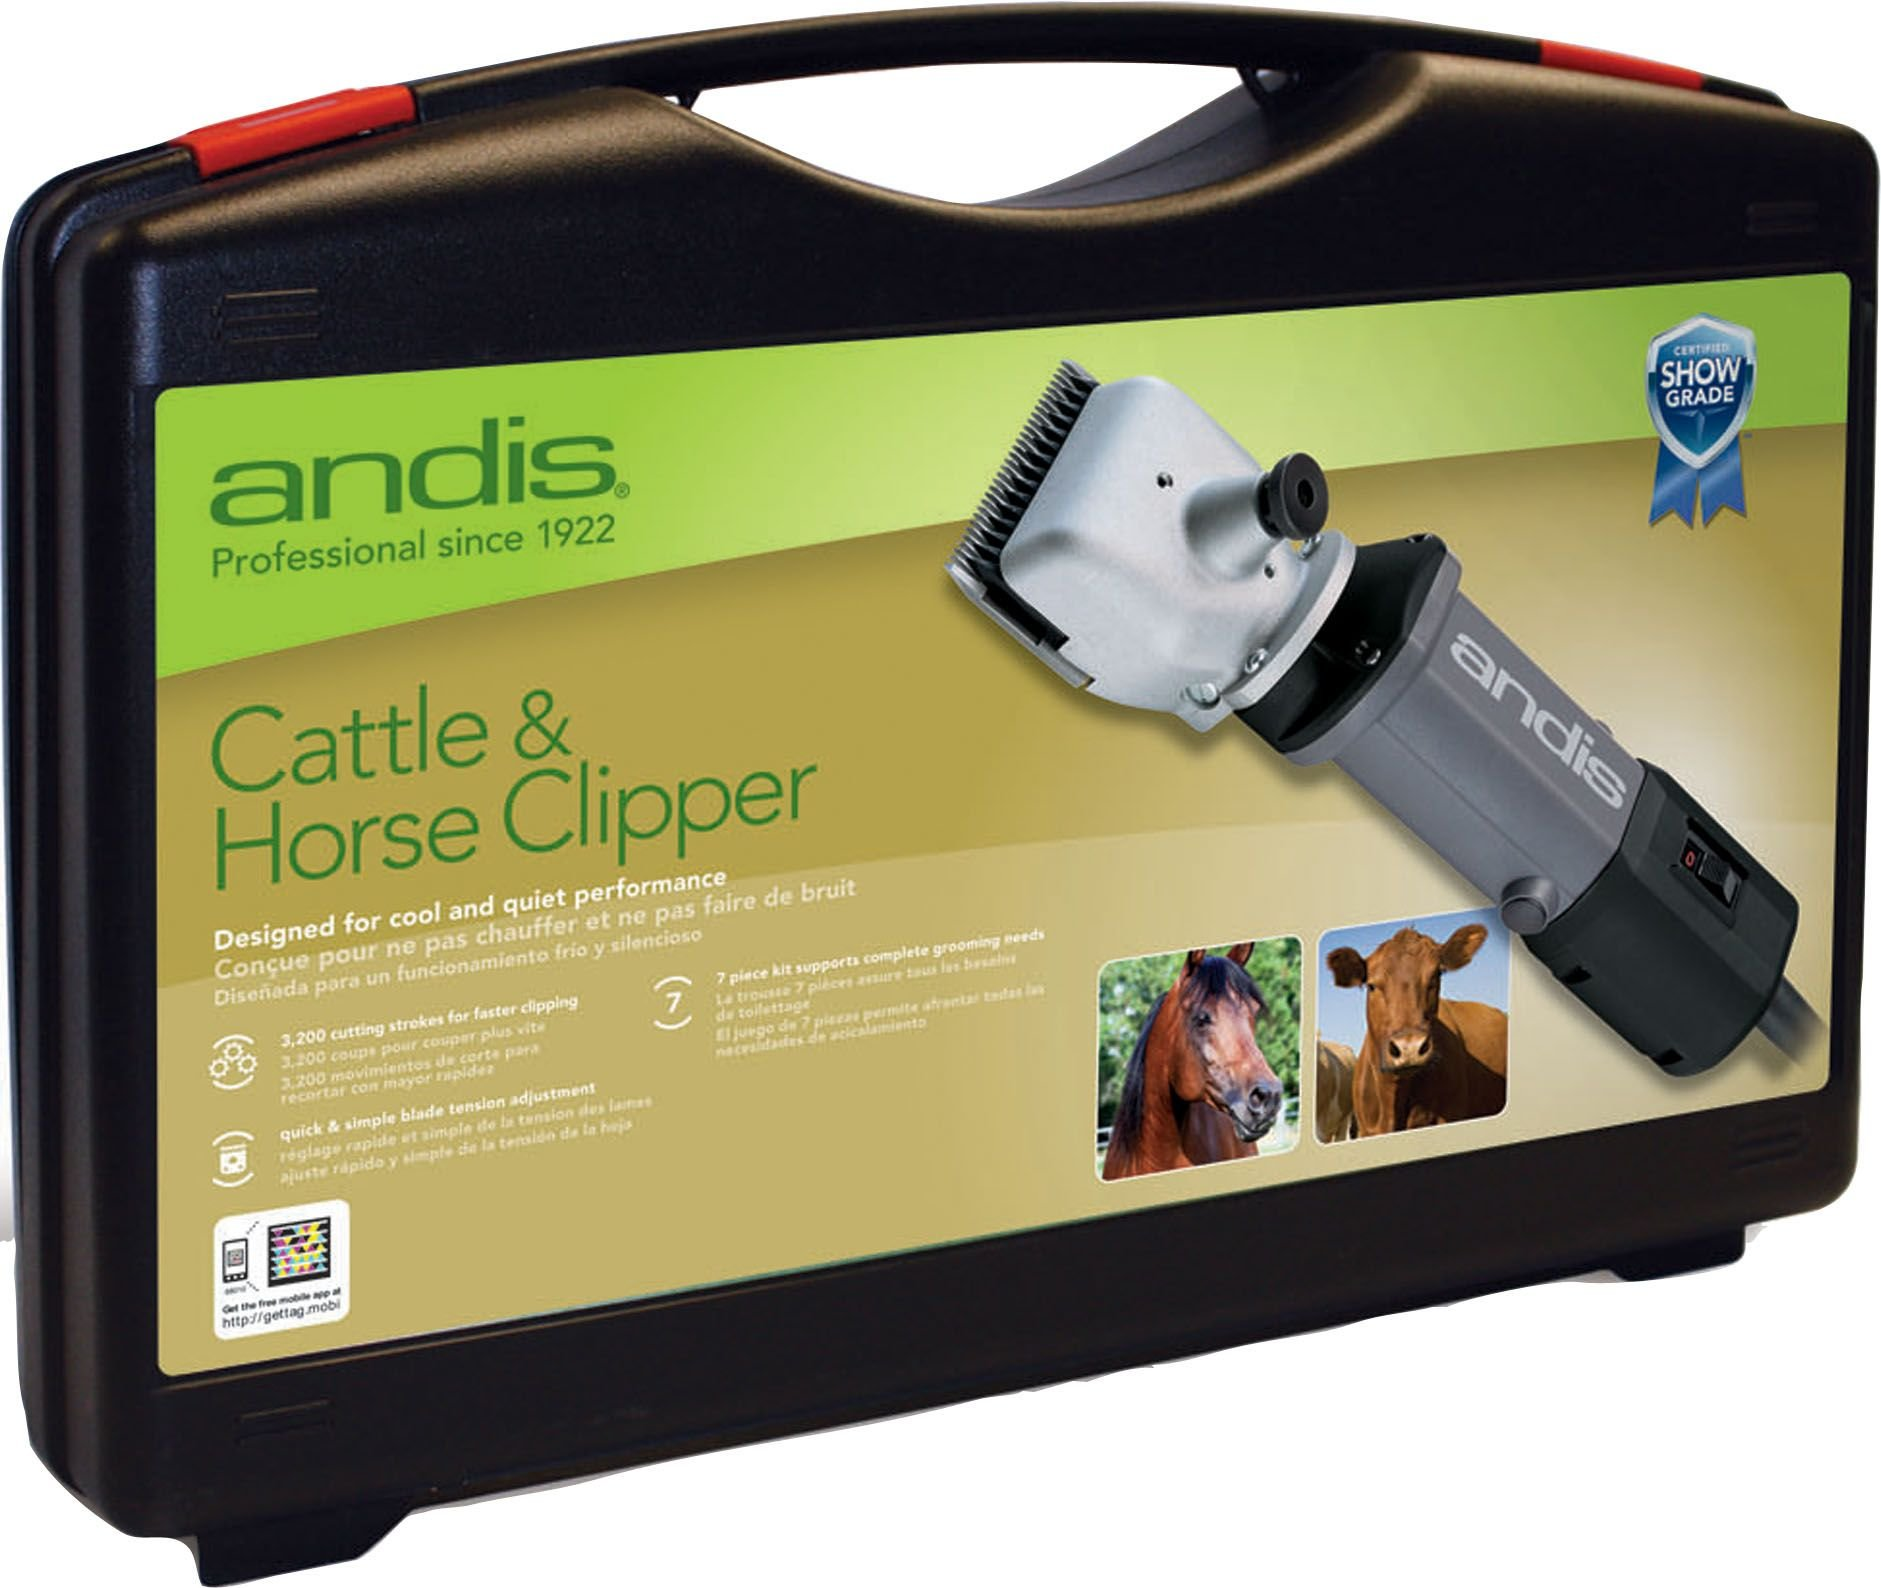 Andis Cattle and Horse Clipper, Professional Equine and Livestock Grooming, HC (68010)